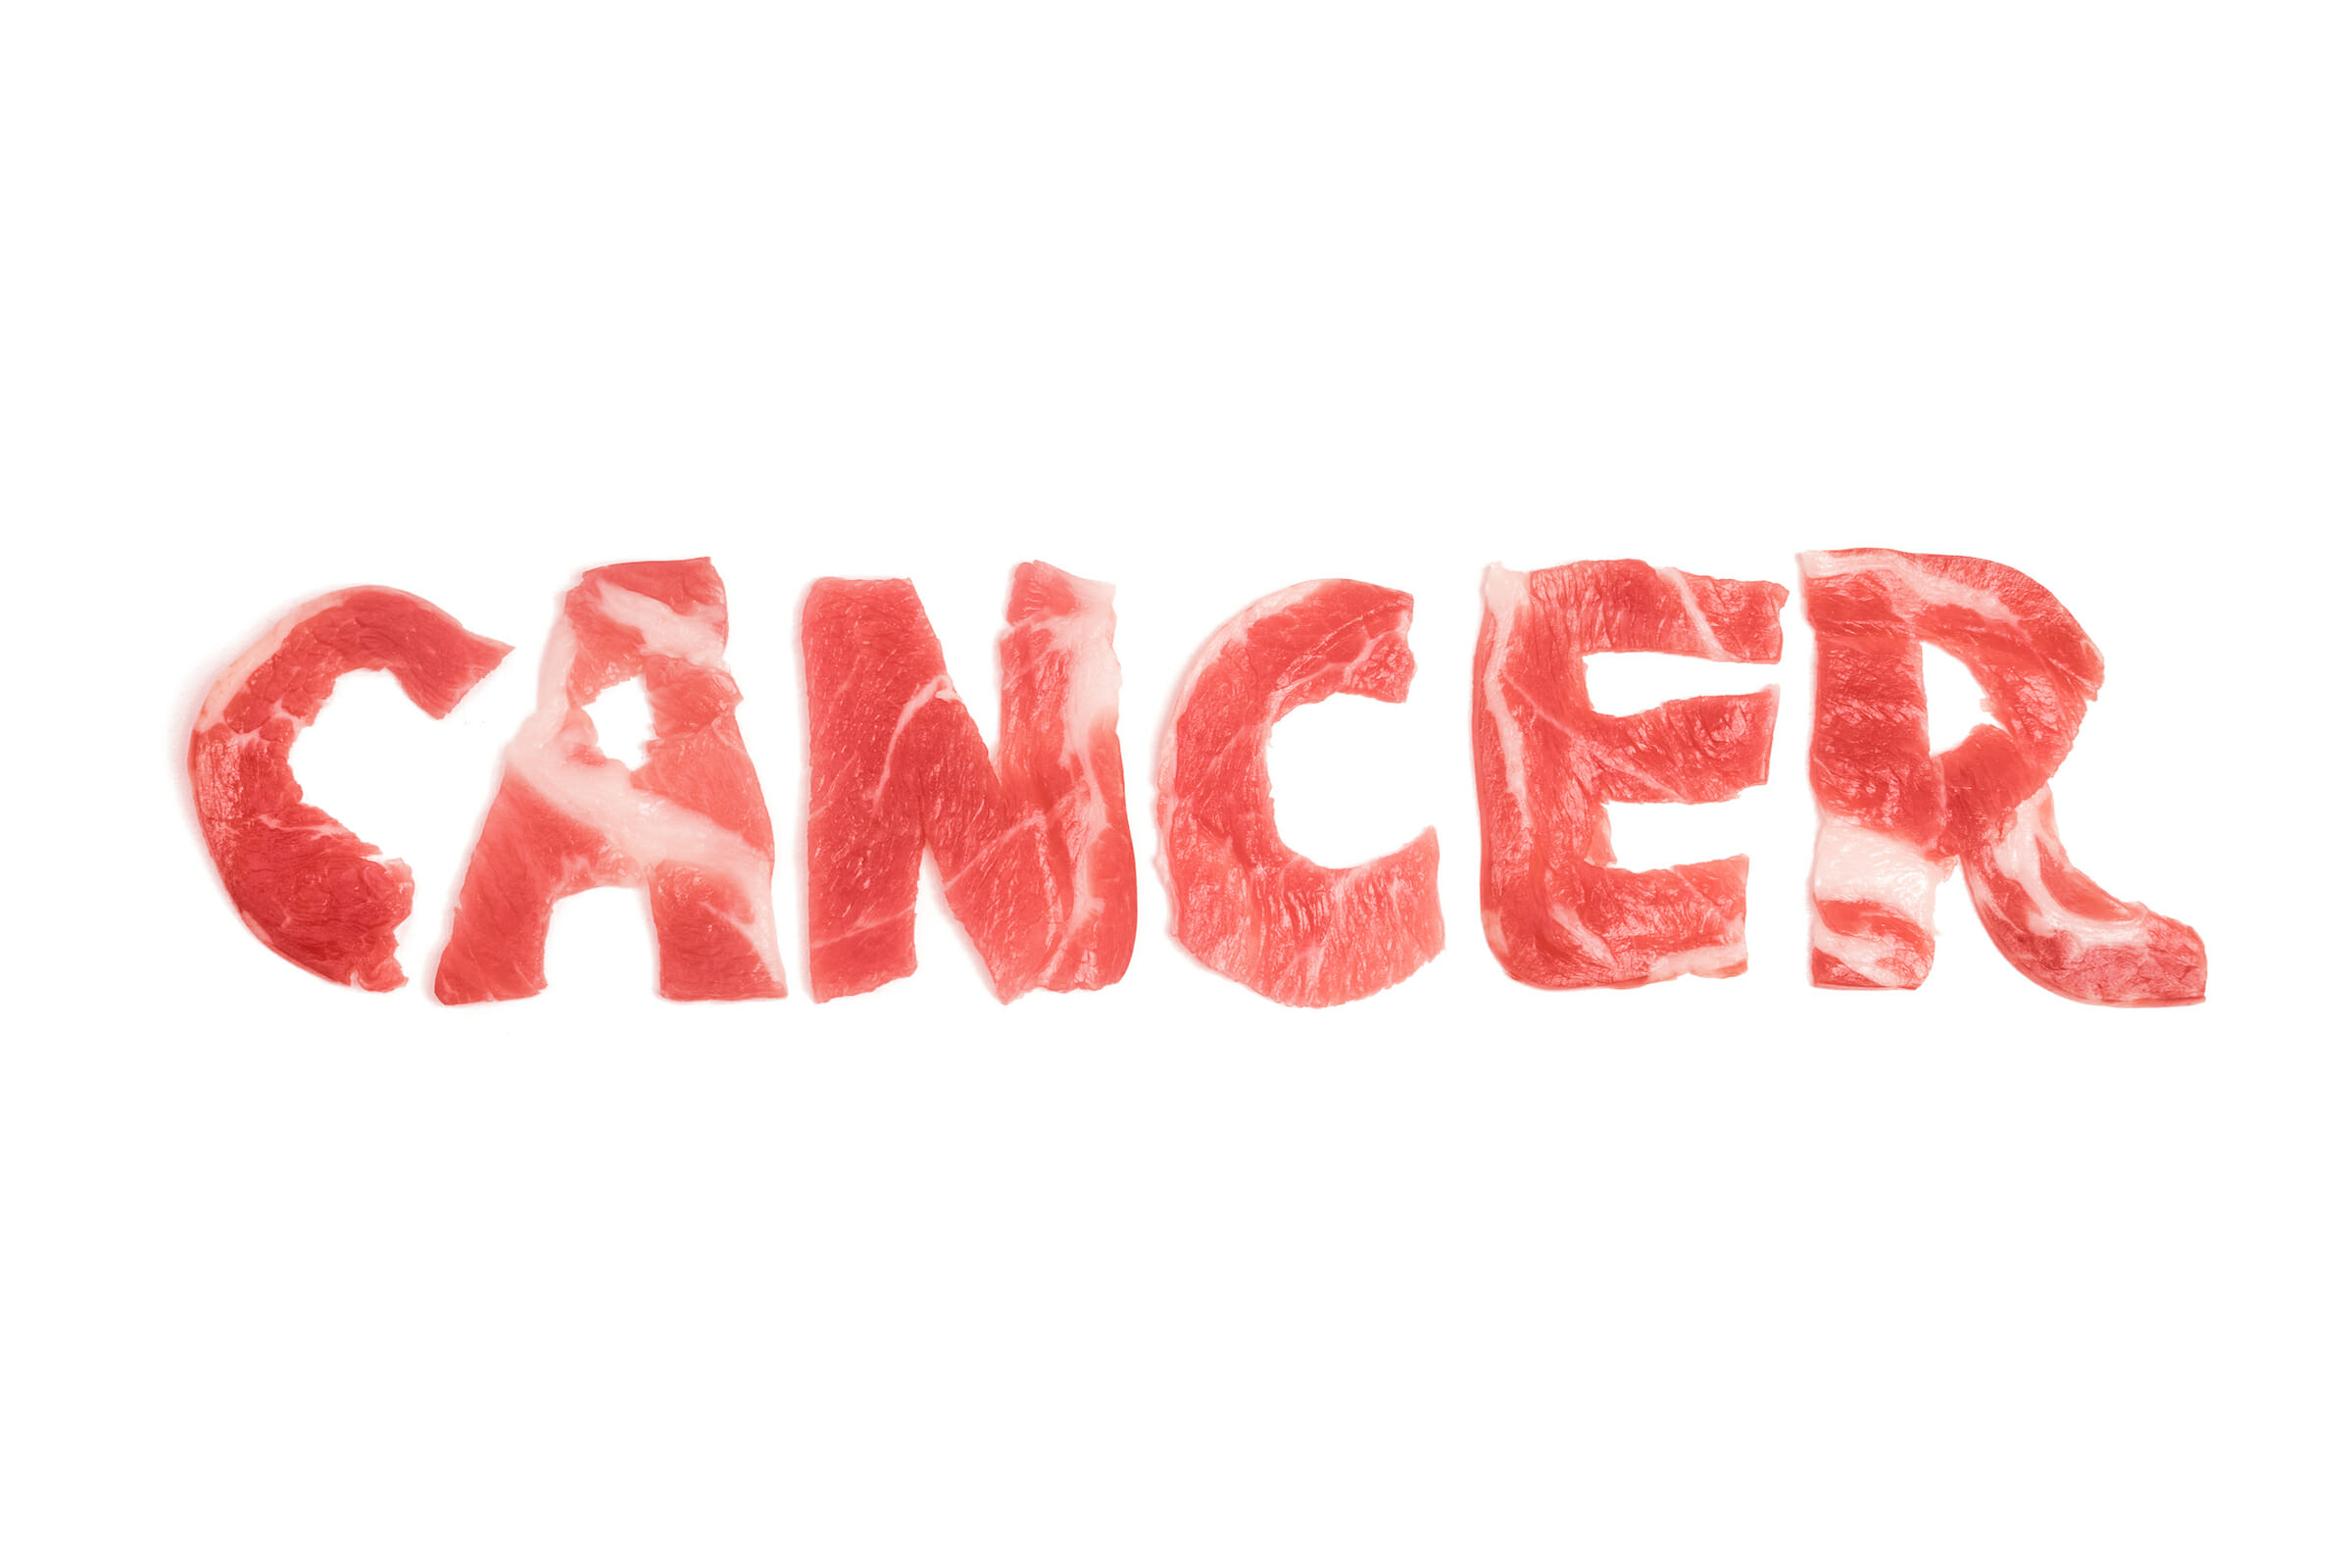 Red Meat and Cancer - What's the Risk?